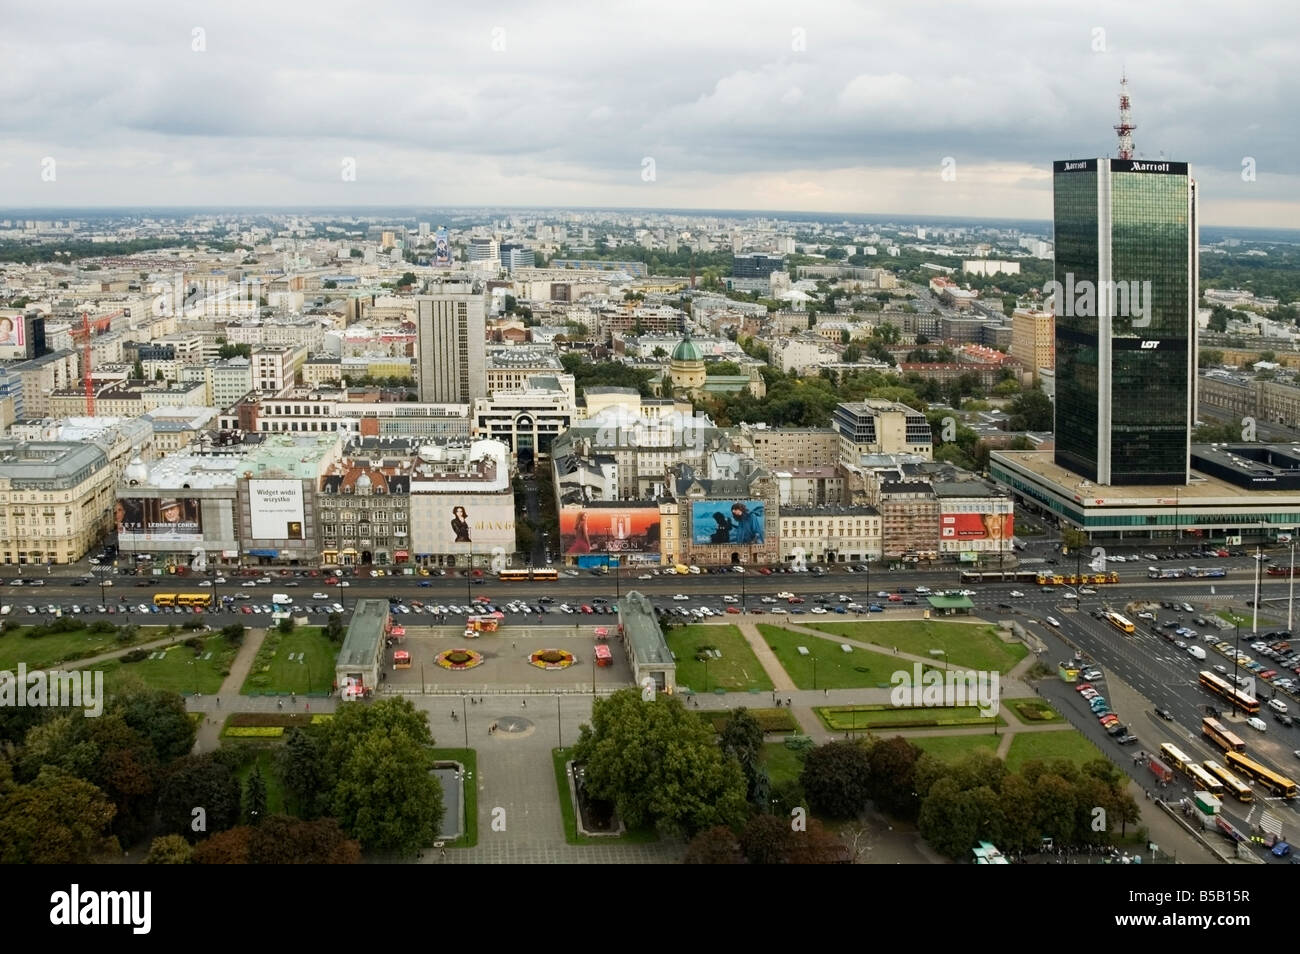 Aerial, skyline view of Central Warsaw, Śròdmieście district and Marriott Hotel 1980s skyscraper, Warszawa, - Stock Image